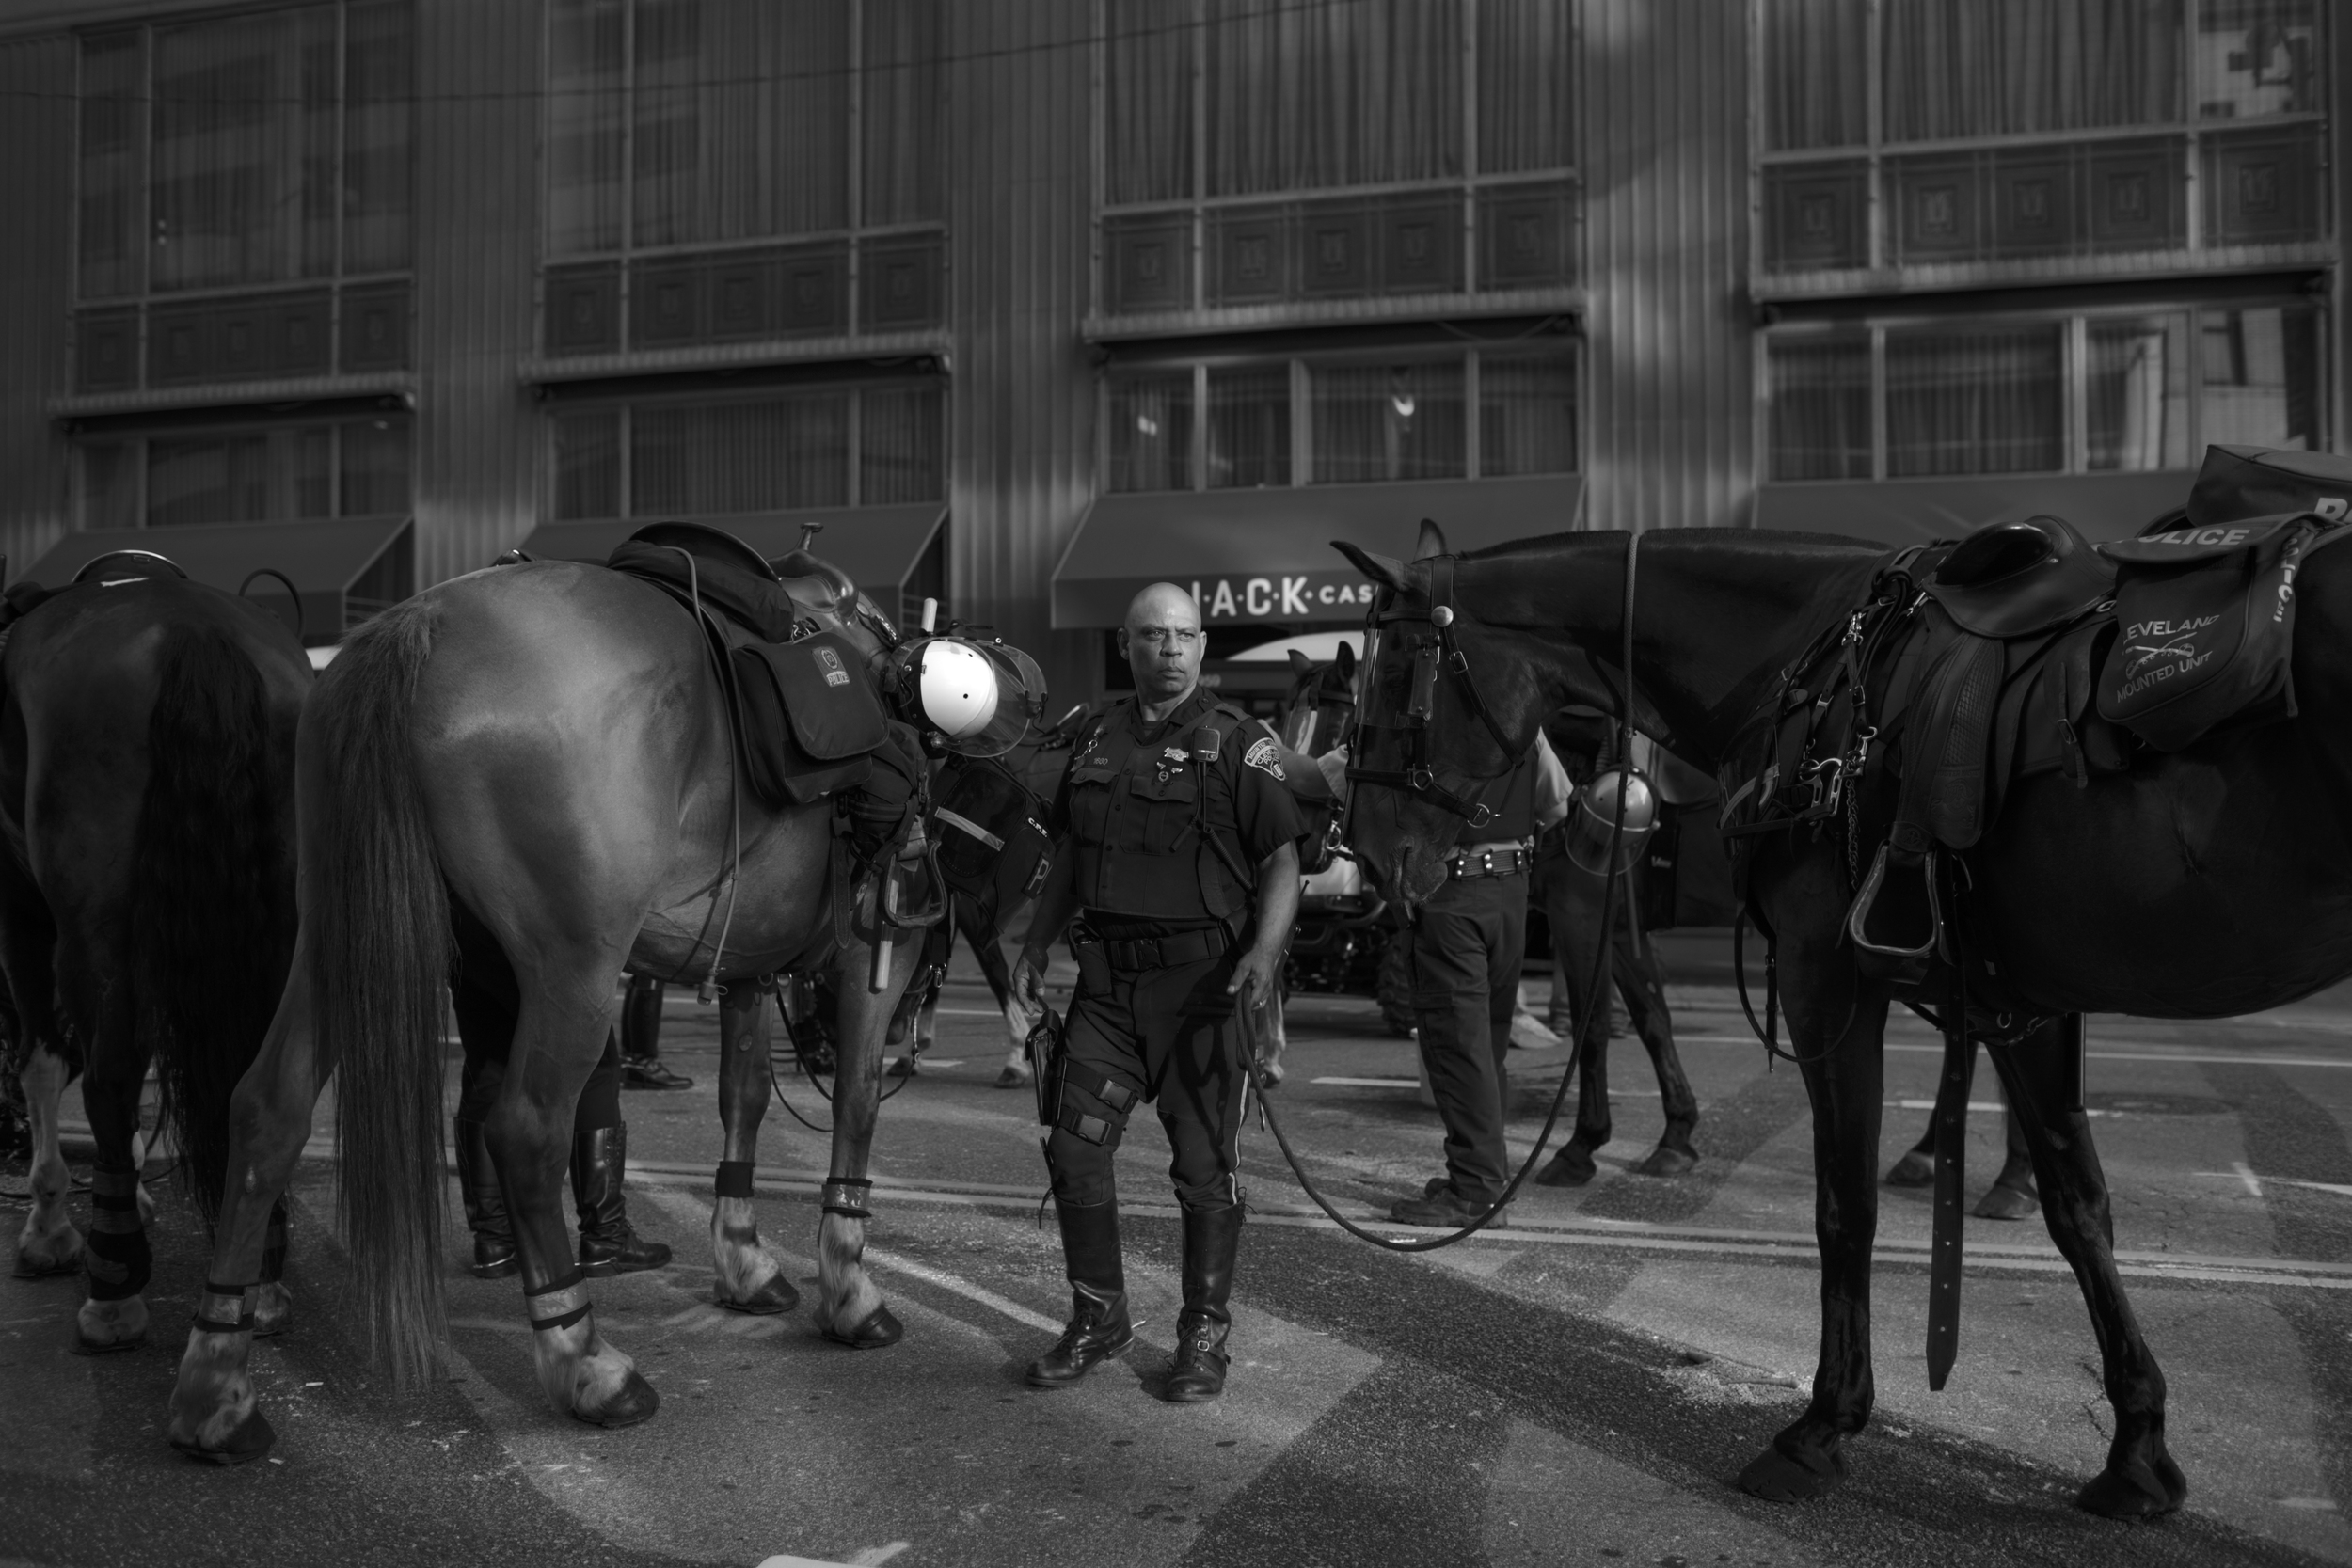 19 July 2016 - Cleveland, Ohio - An officer of the Cleveland Police Mounted Unit is taking a break after shift change on the 2nd day of the Republican National Convention.Photo: Cédric von Niederhäusern